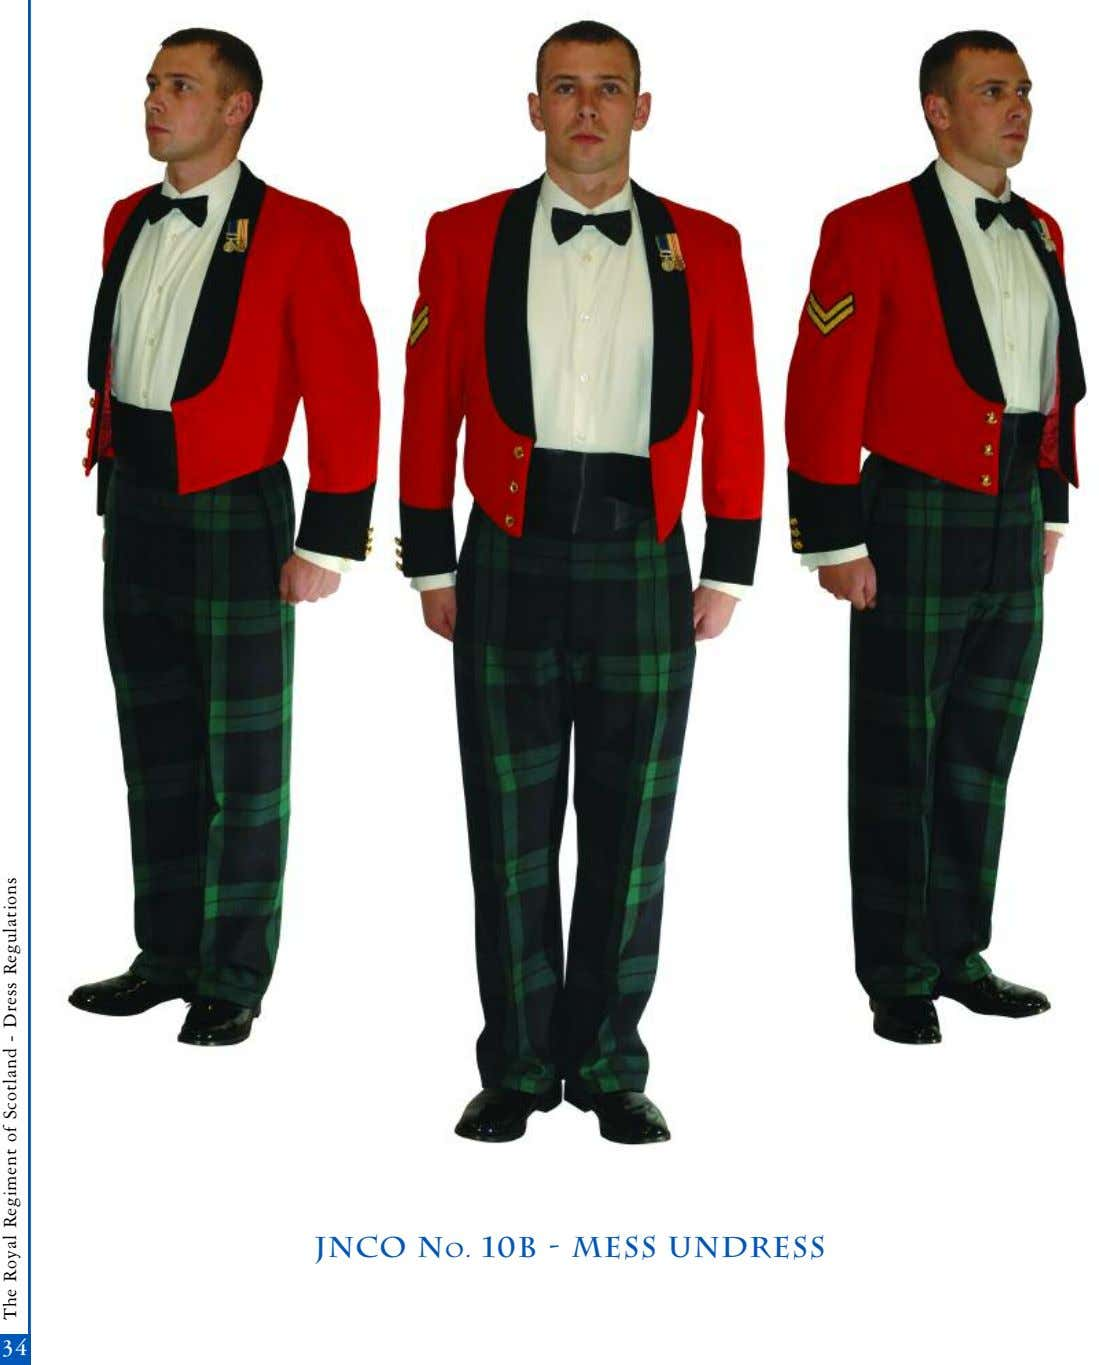 jnco No. 10b - mess undress 3434 The Royal Regiment of Scotland - Dress Regulations